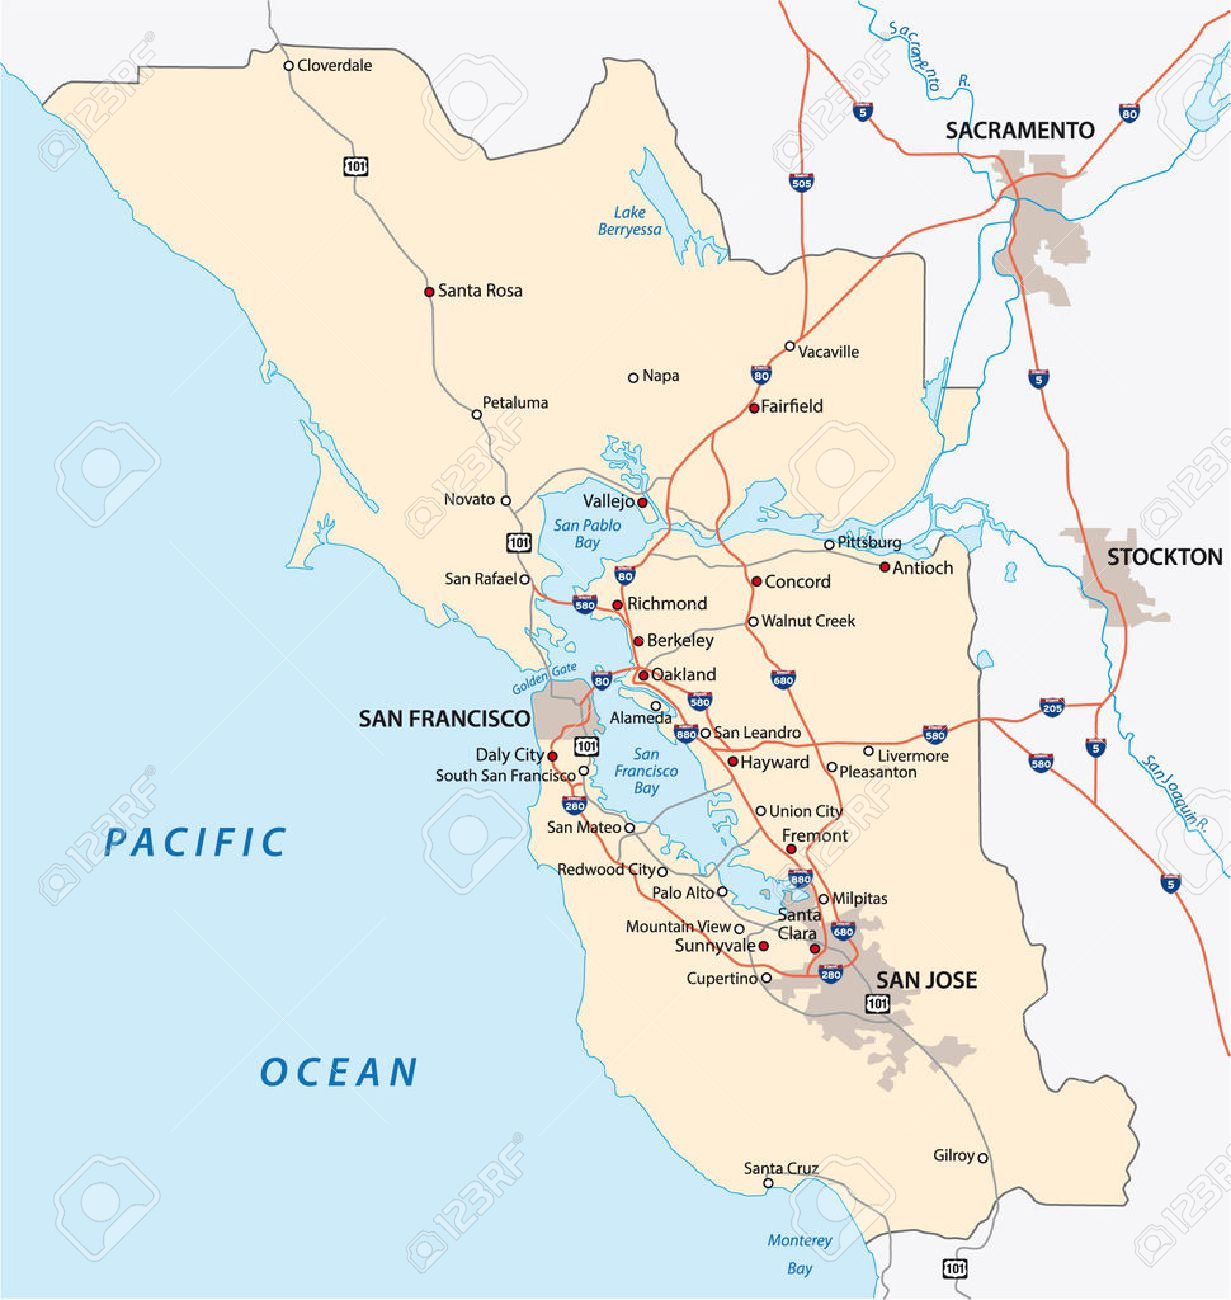 san francisco bay area map on sfo bay map, central valley map, mojave desert map, hudson bay map, chicago map, delaware bay map, san pablo bay map, puget sound map, lake erie map, california map, chesapeake bay map, great basin map, st. helena bay map, sierra nevada map, monterey bay map, festival of sail map, lake michigan map, death valley map, angel island map, rocky mountains map,